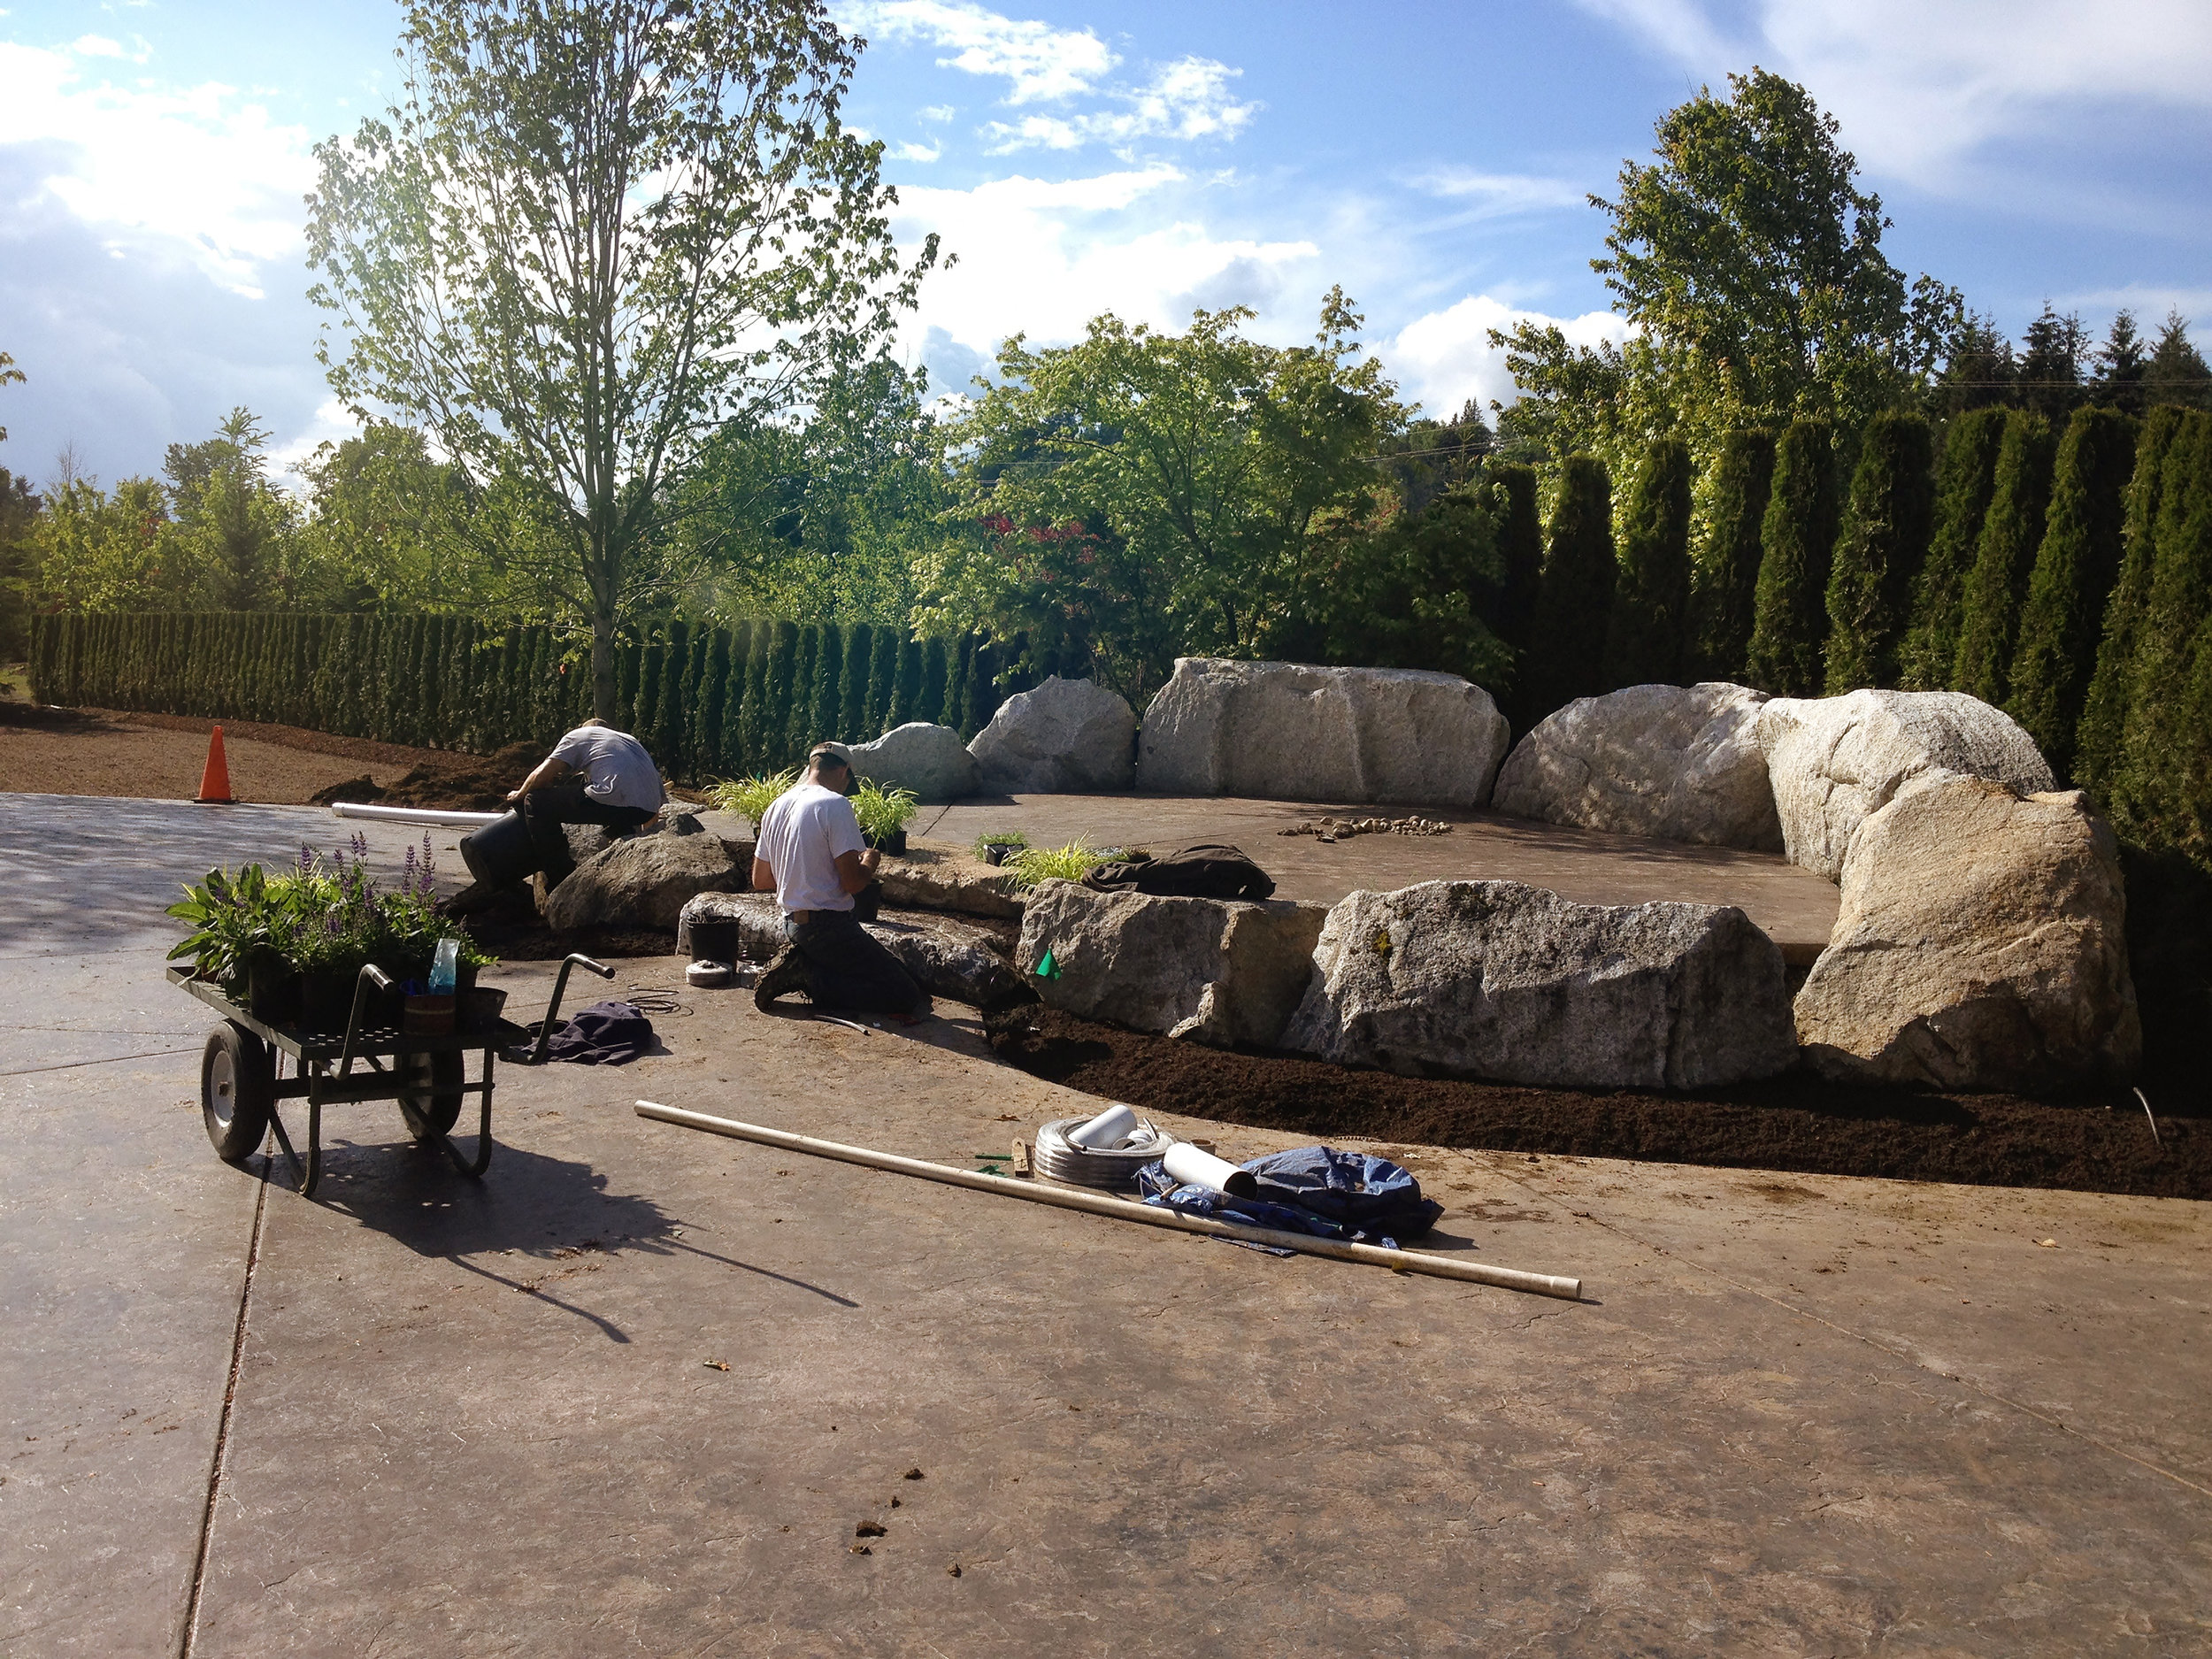 Paul planting up the beds around the granite rock stage. circa 2013